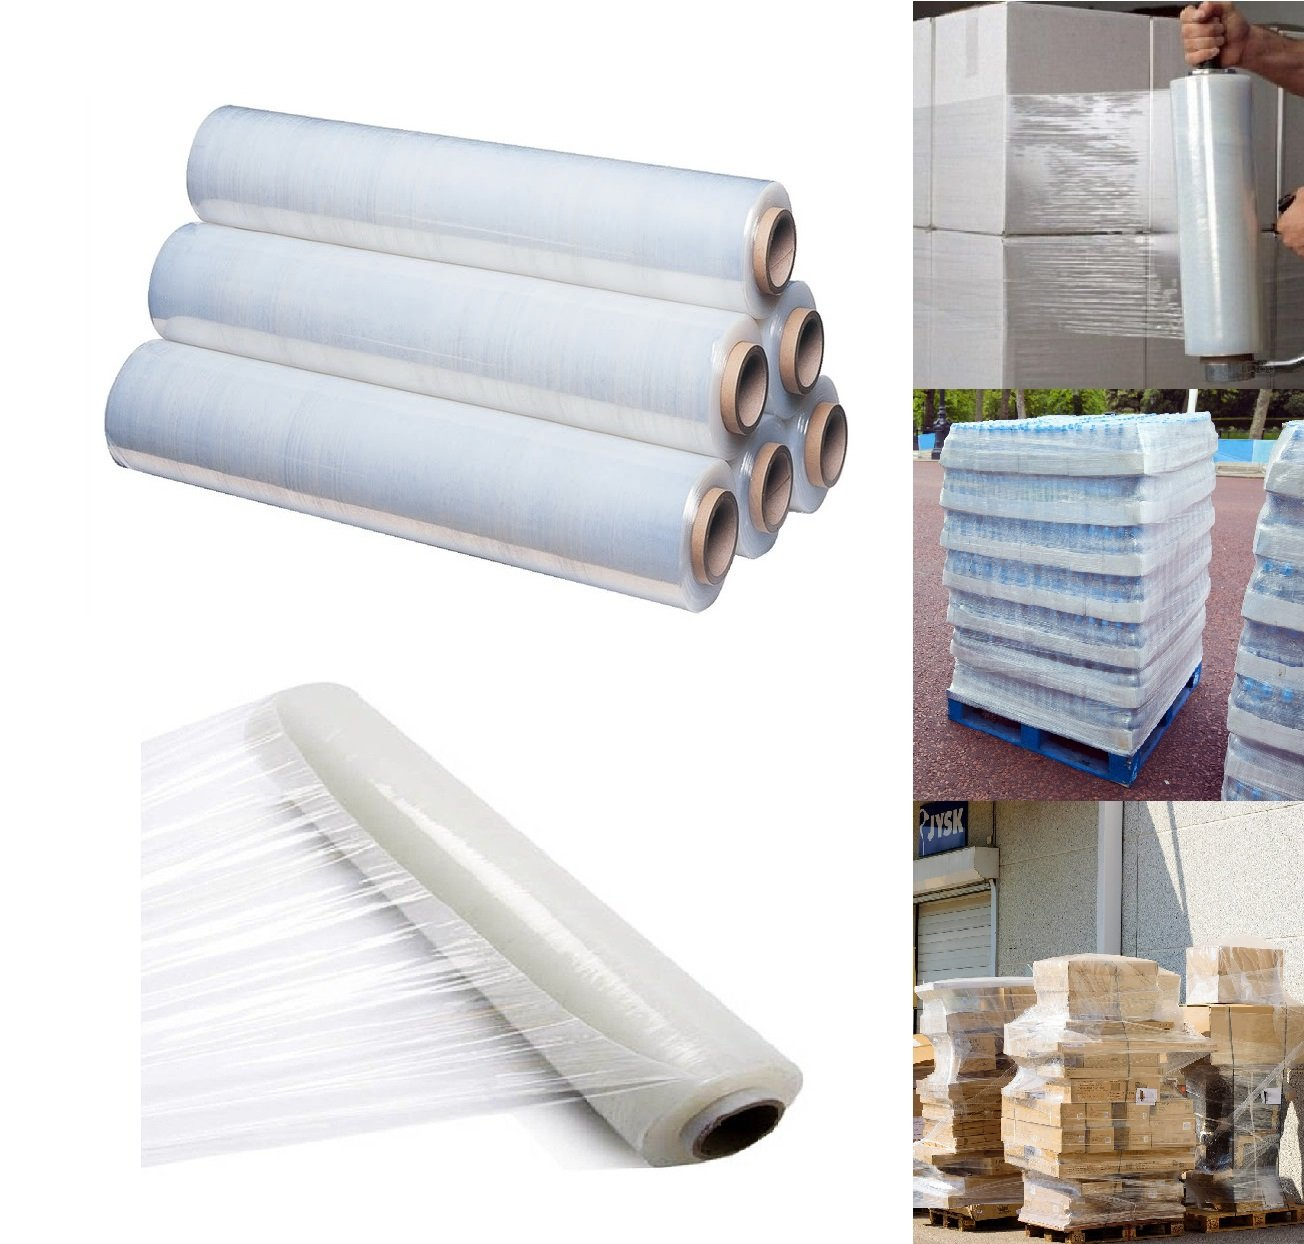 400mm X 250 meter Rolls Clear Pallet Stretch Shrink Wrap Parcel Packing Cling Film Pack of 1 St@llion 400 mm X 250 meter 17 micron Shrink Wrap